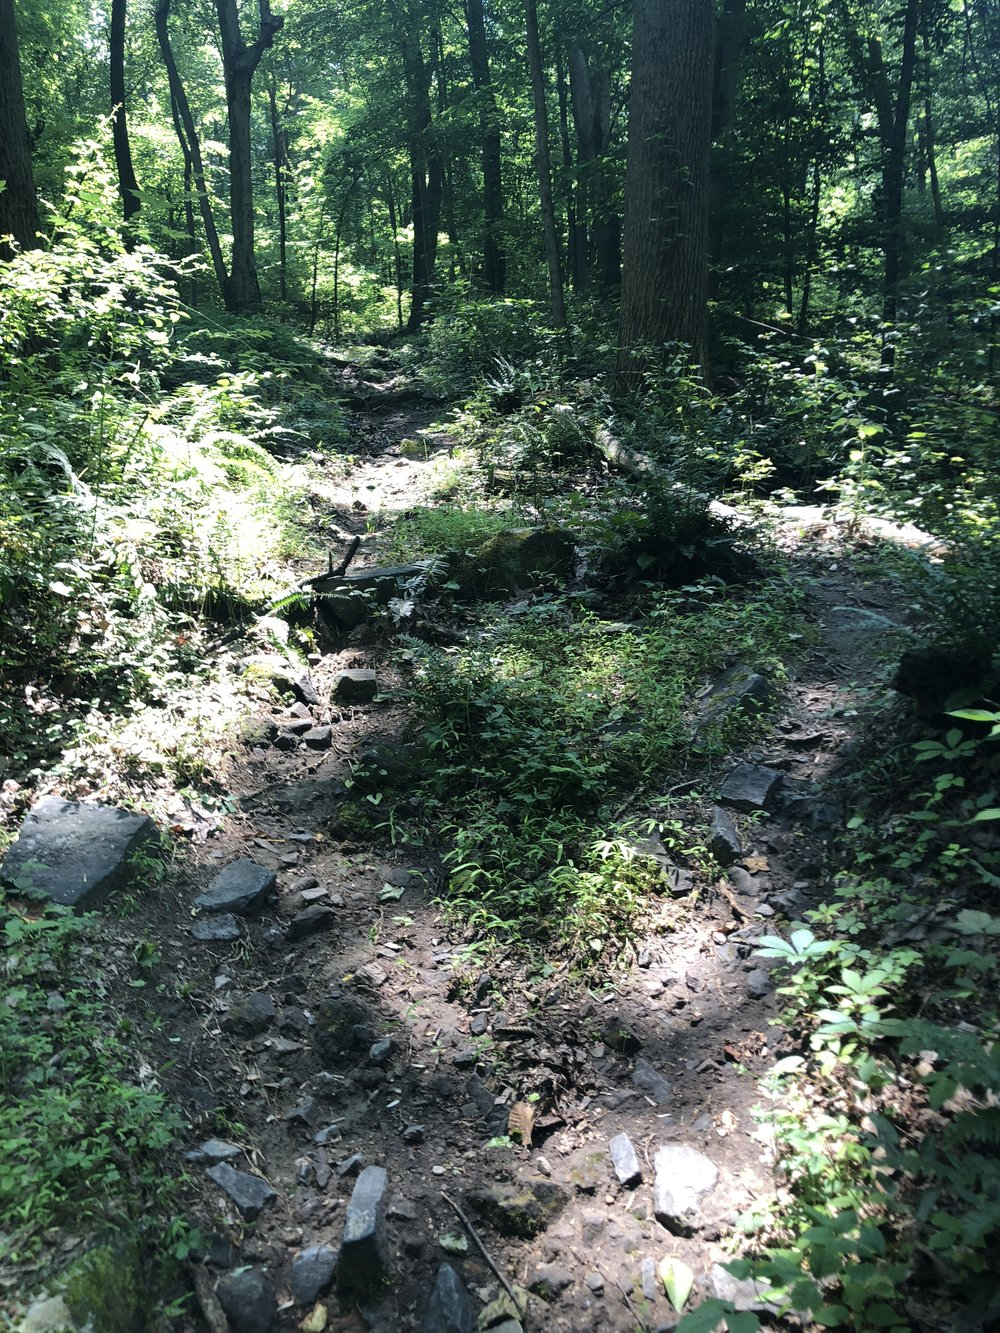 Steep mountain bike trail uphill with ROCKS!